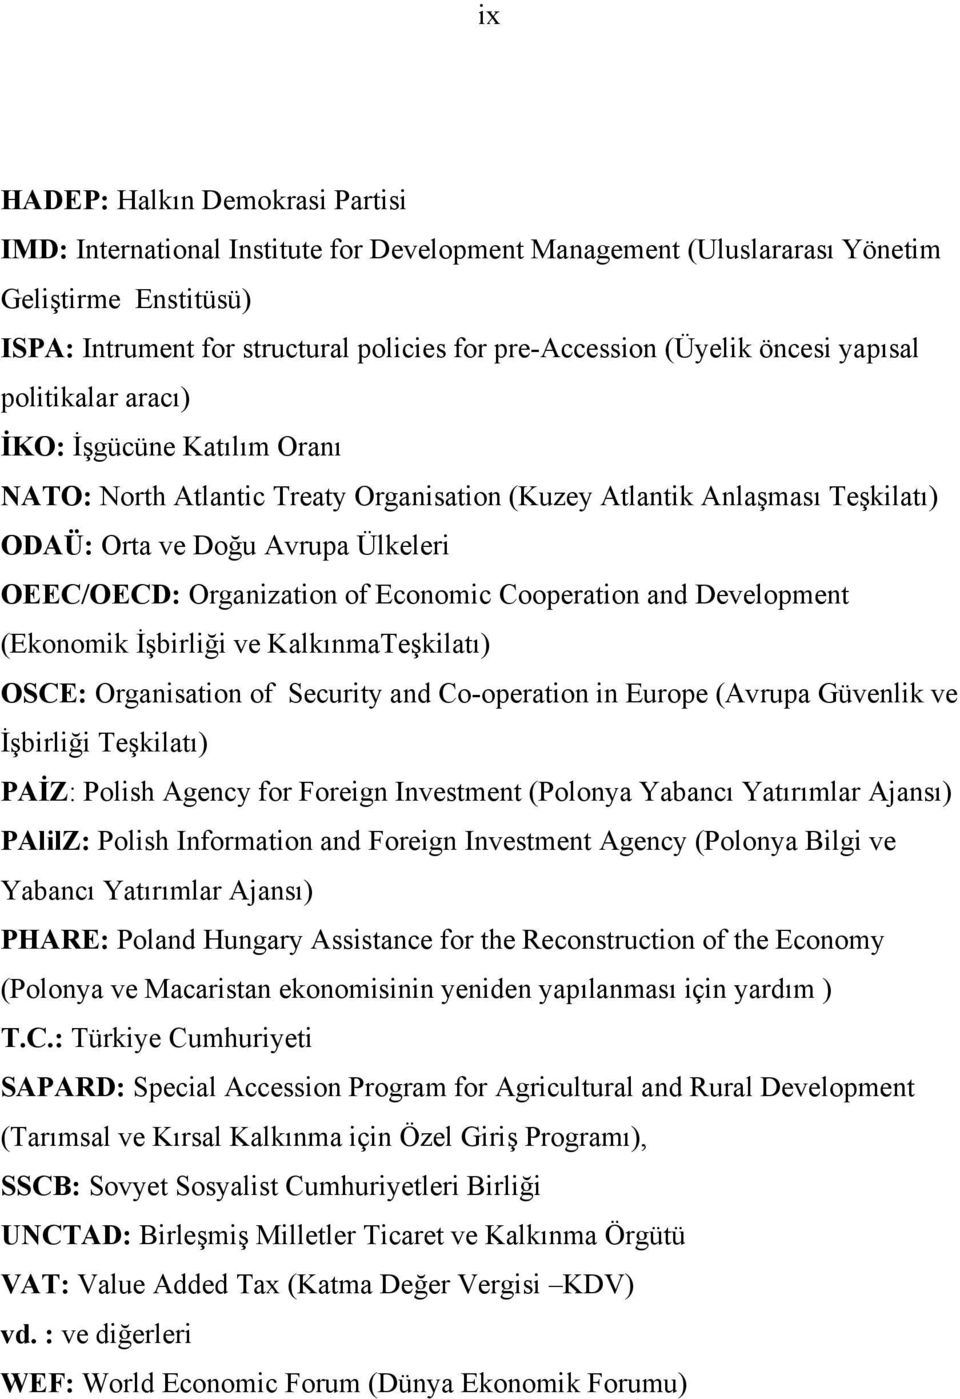 Organization of Economic Cooperation and Development (Ekonomik İşbirliği ve KalkınmaTeşkilatı) OSCE: Organisation of Security and Co-operation in Europe (Avrupa Güvenlik ve İşbirliği Teşkilatı) PAİZ: